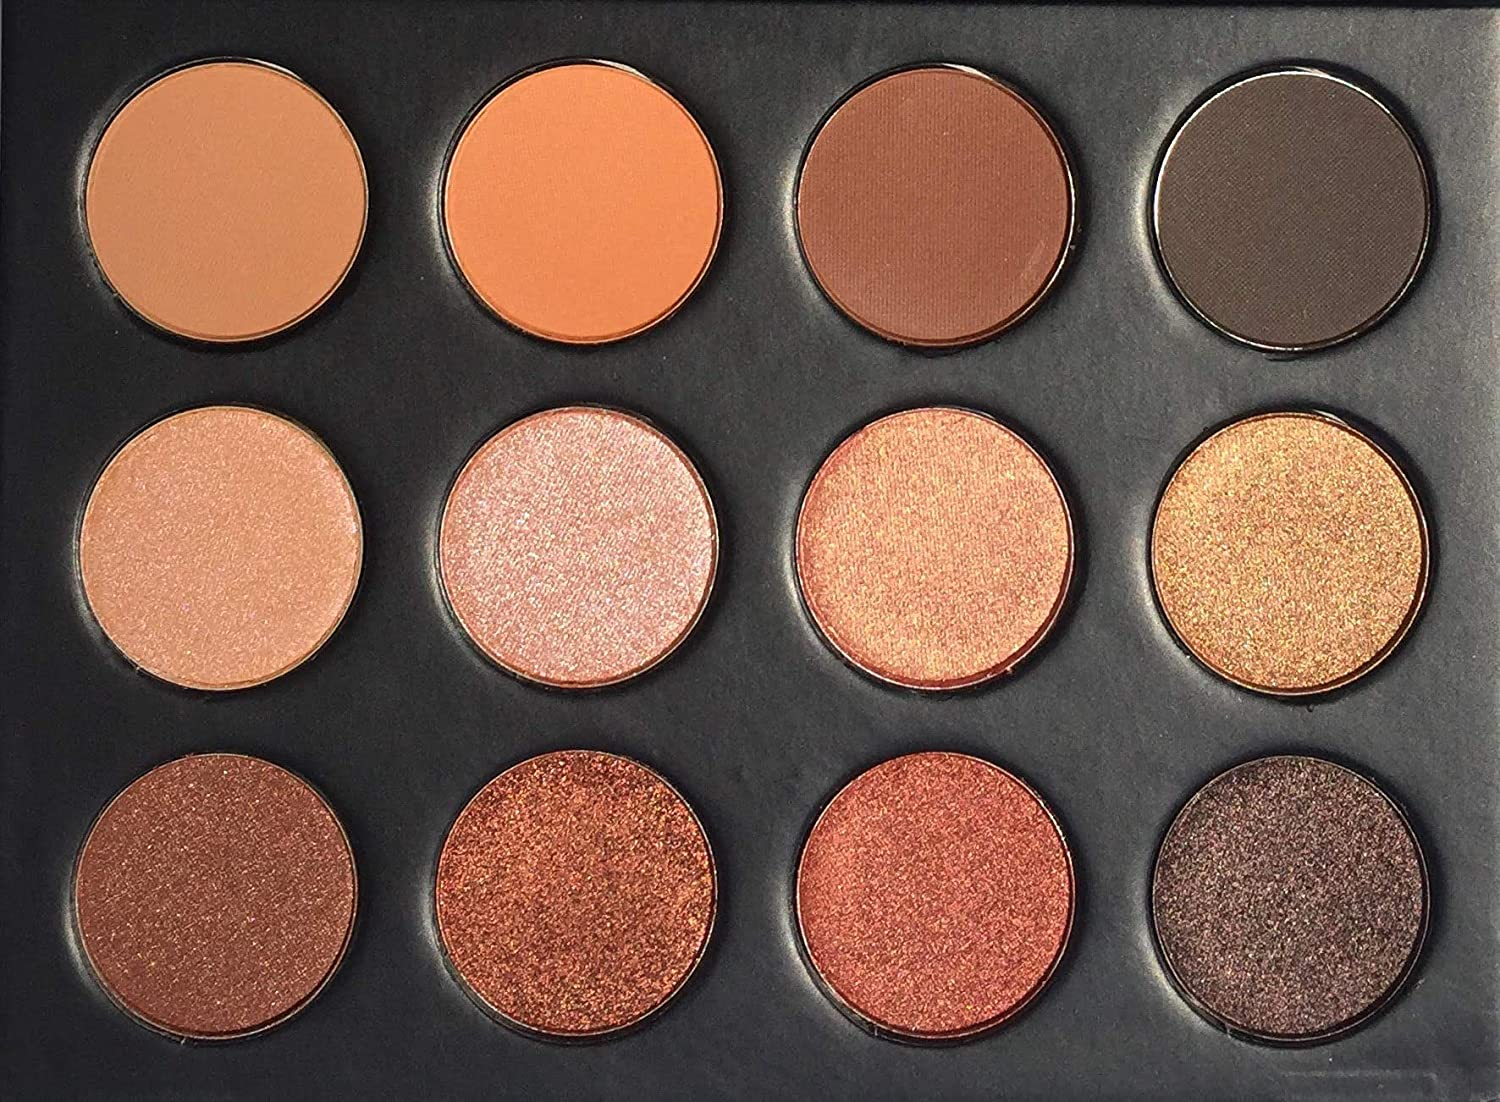 Koko Eyeshadow Pro Makeup Palette – 12 Highly Pigmented Matte and Shimmer Colors – Nudes Warm Natural Bronze Neutral Smoky Eye Professional Cosmetic Eyeshadow